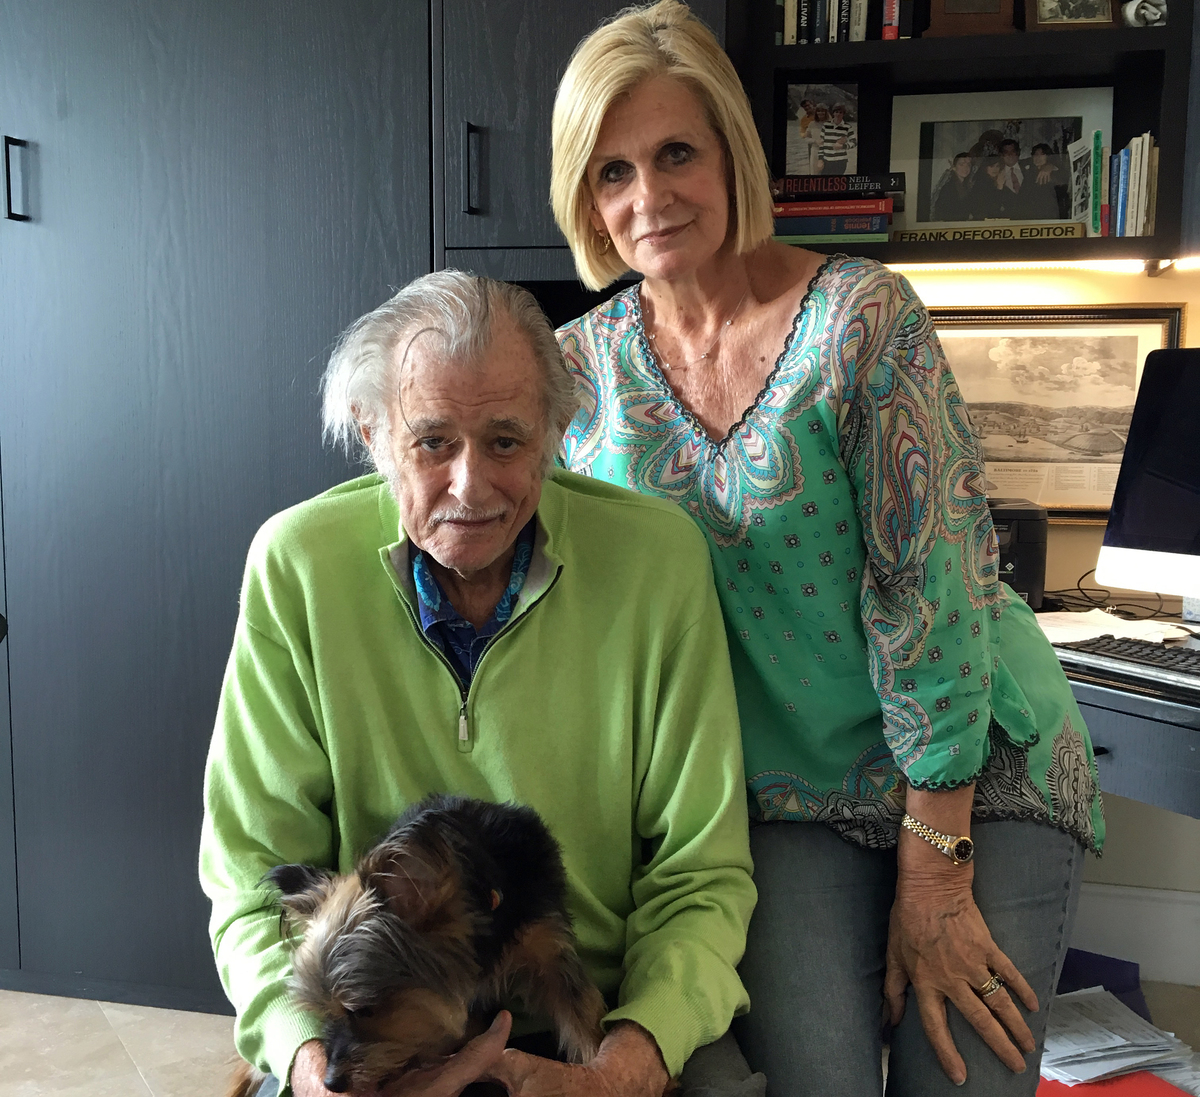 Frank Deford, his wife, Carol, and their dog, Miss Snickers, in his home office in Key West, Florida. On Wednesday, Deford retired from Morning Edition as sports commentator. (Tom Goldman/NPR)